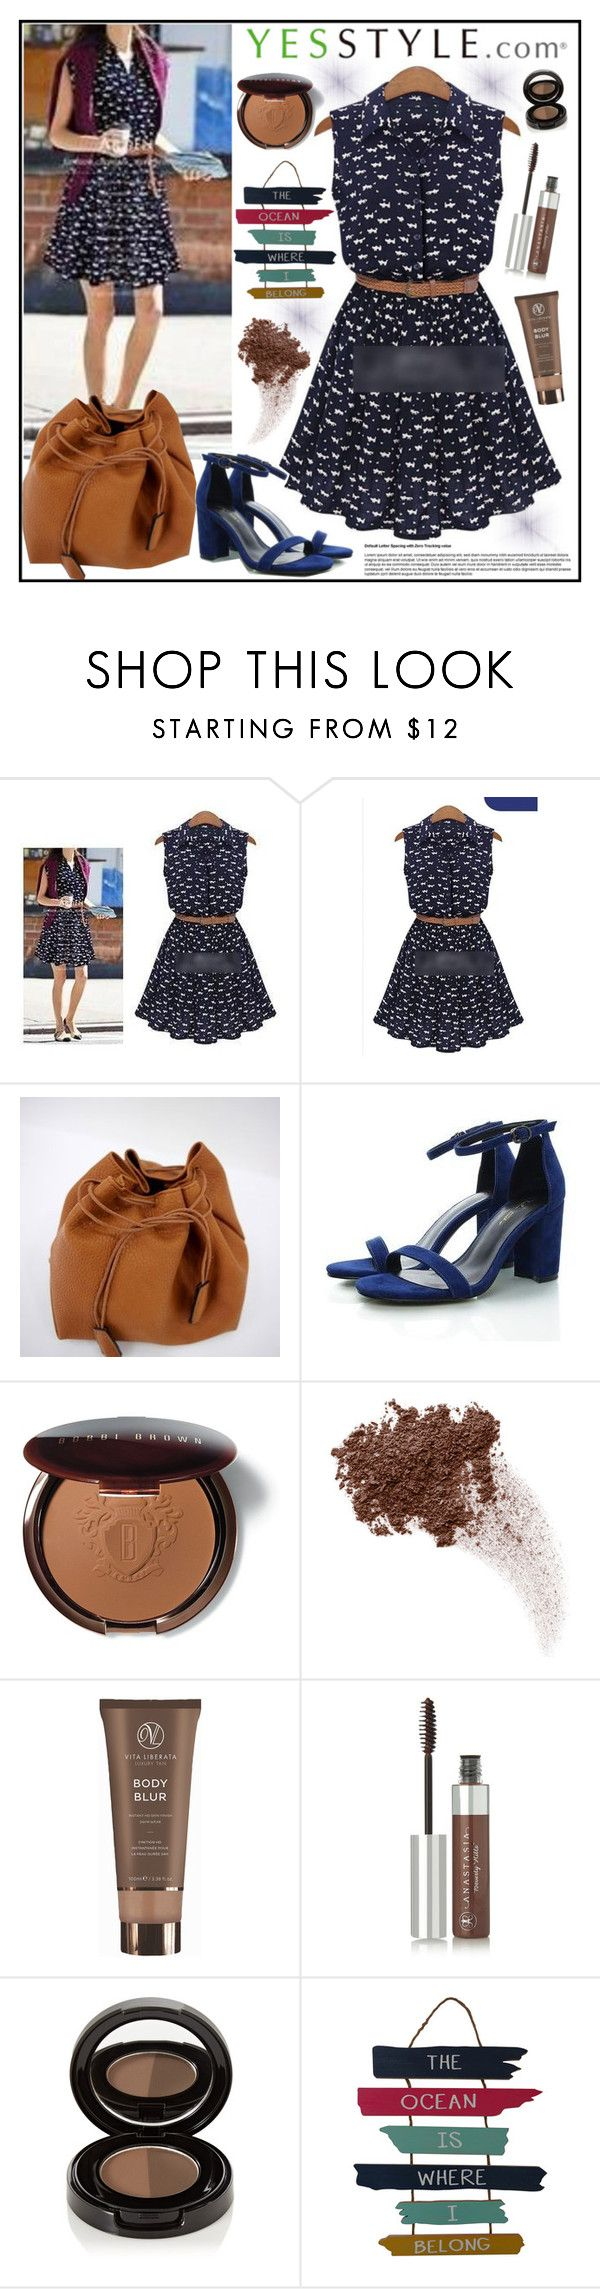 """YesStyle - 10% off coupon"" by gaby-mil ❤ liked on Polyvore featuring Arroba, Bobbi Brown Cosmetics, Bare Escentuals, Vita Liberata, Anastasia Beverly Hills, WALL, party, anniversary, celebration and yesstyle"